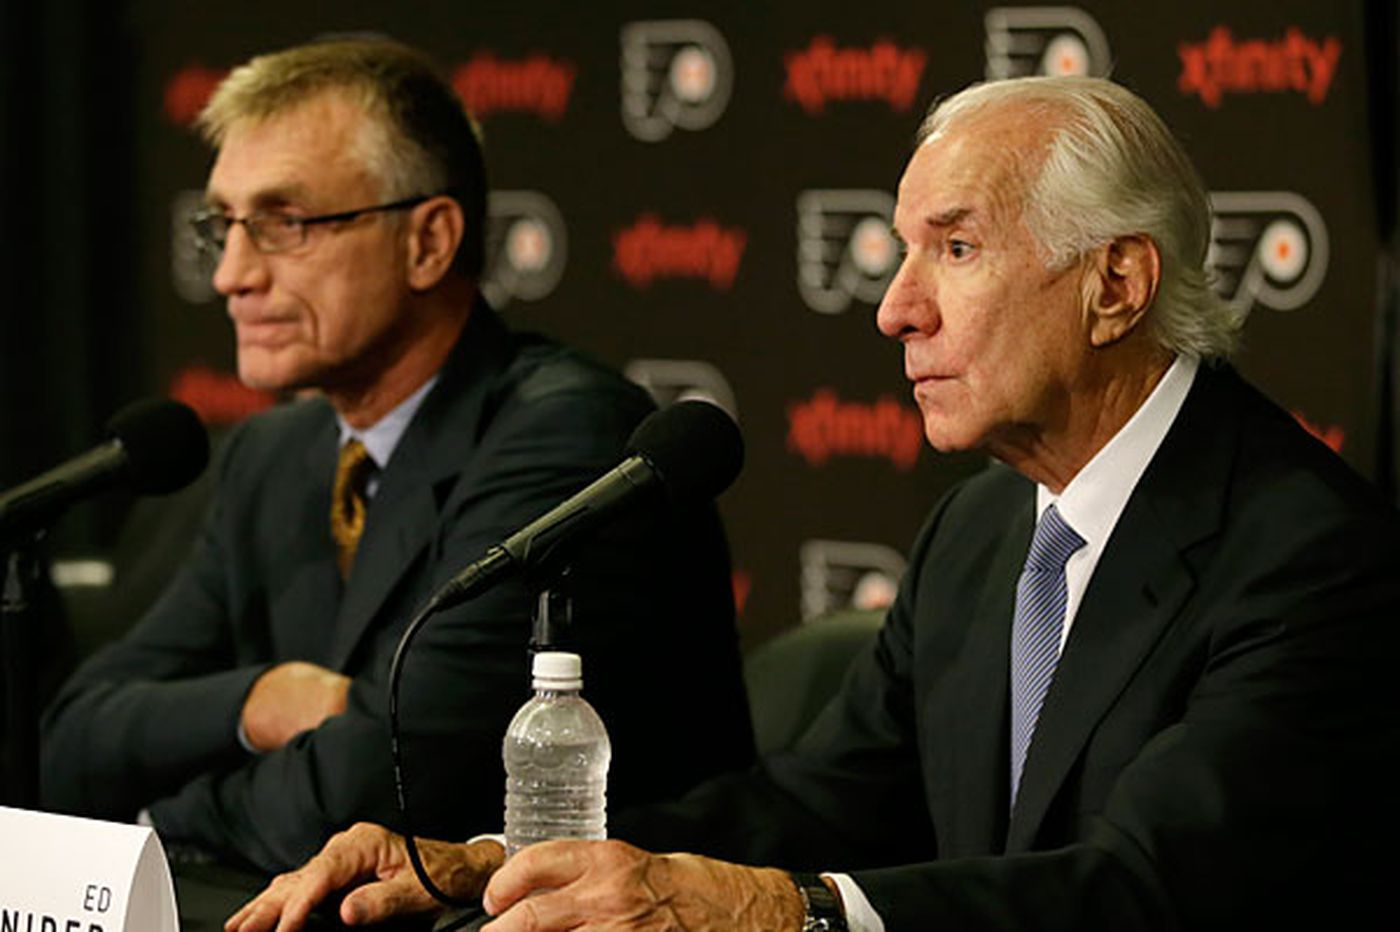 Mixed messages over changes in Flyers' front office?